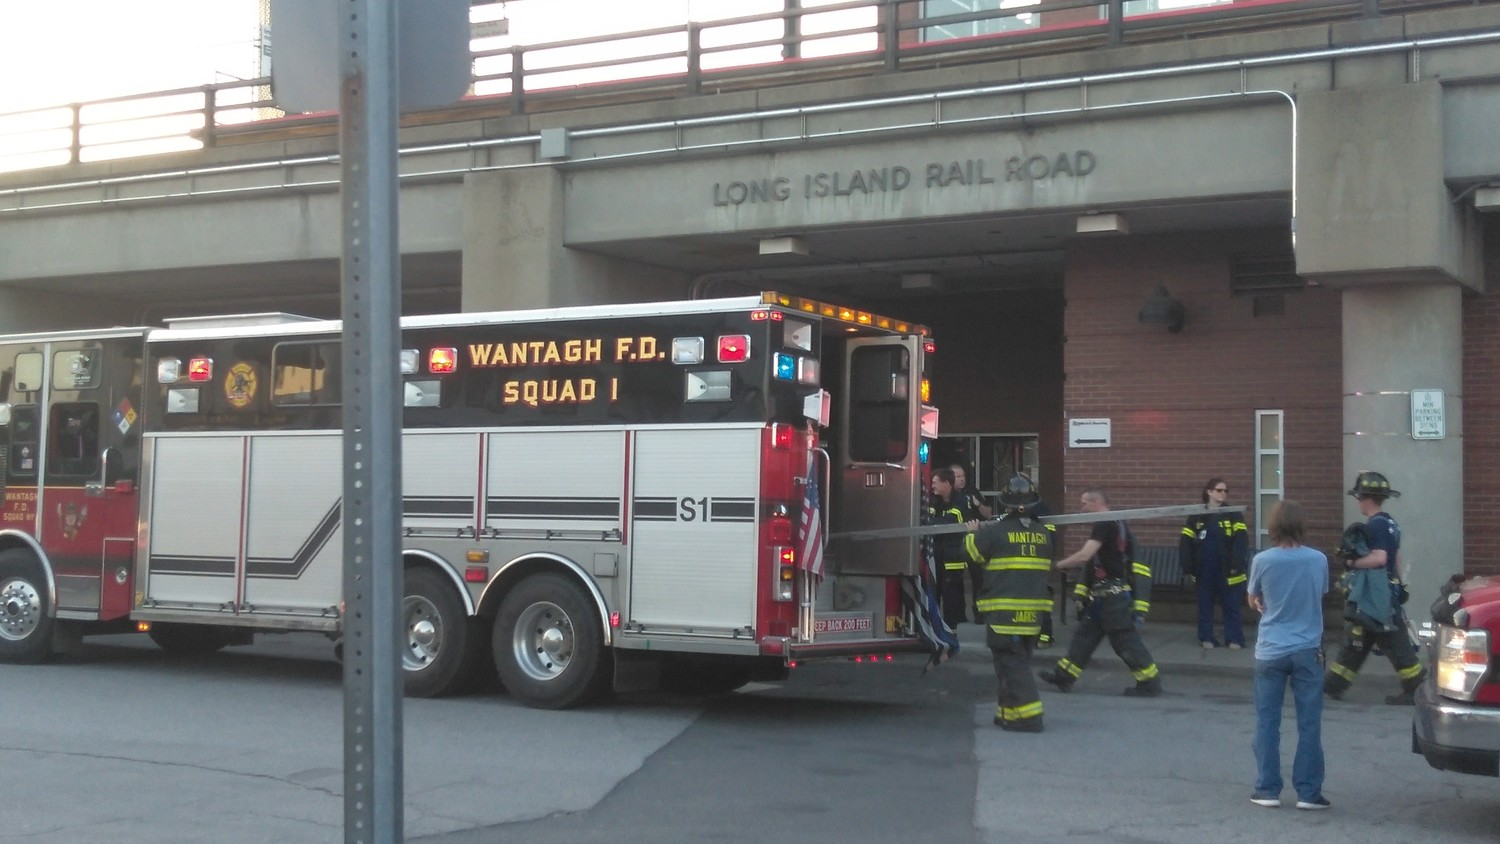 The Wantagh FD rescued 12 passengers stuck on the station's new elevator, the same one that broke down twice in March, on May 7.